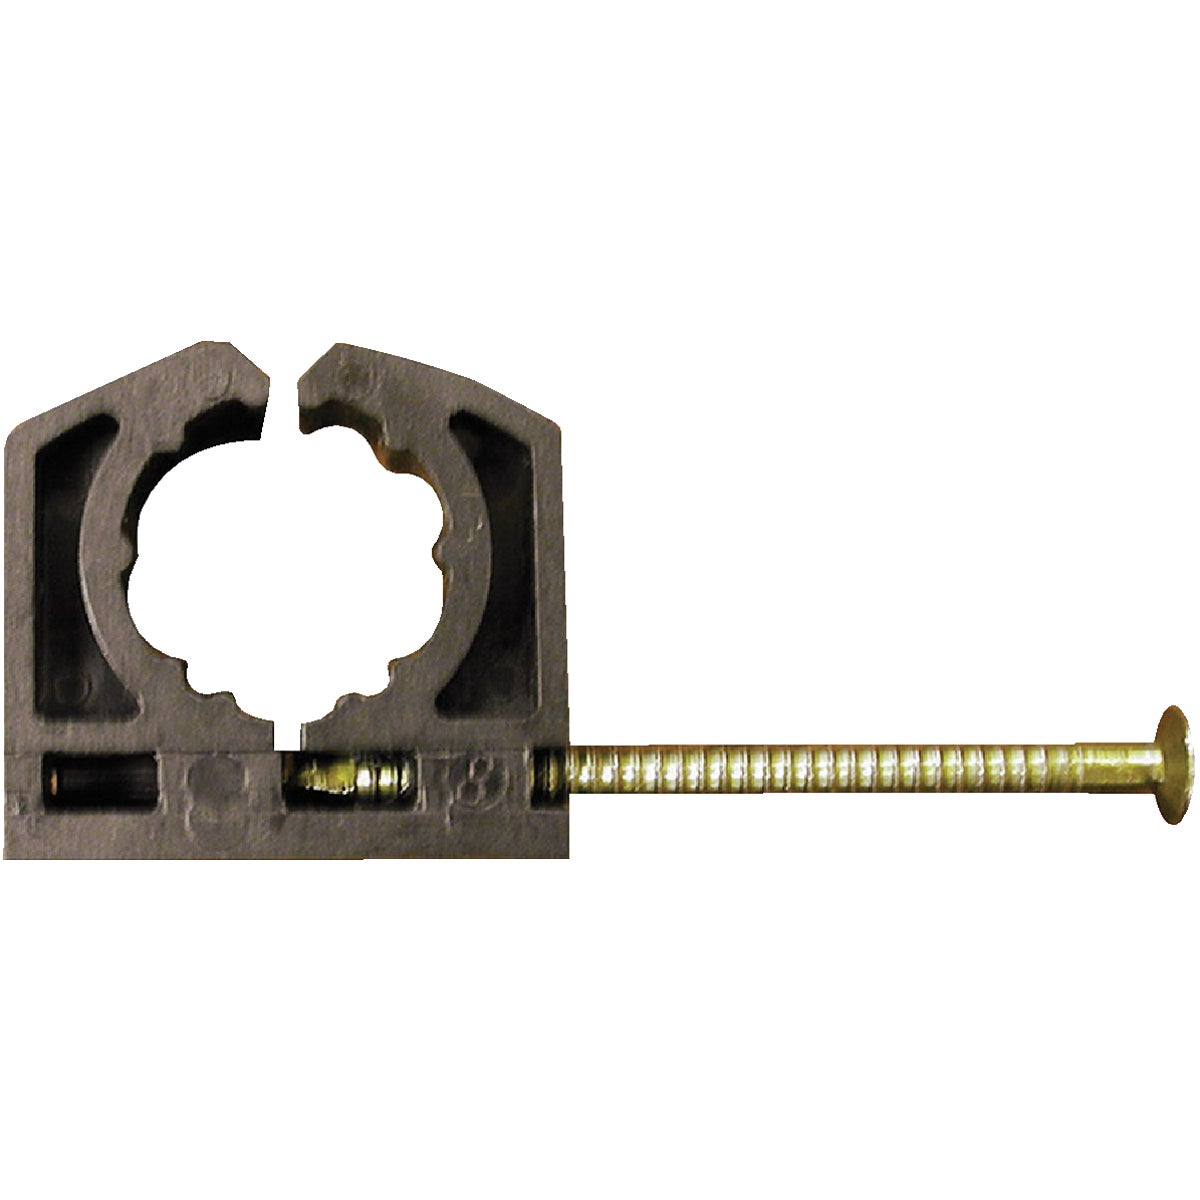 "3/4"" PIPE CLAMP - H25-075 by Jones Stephens Corp"